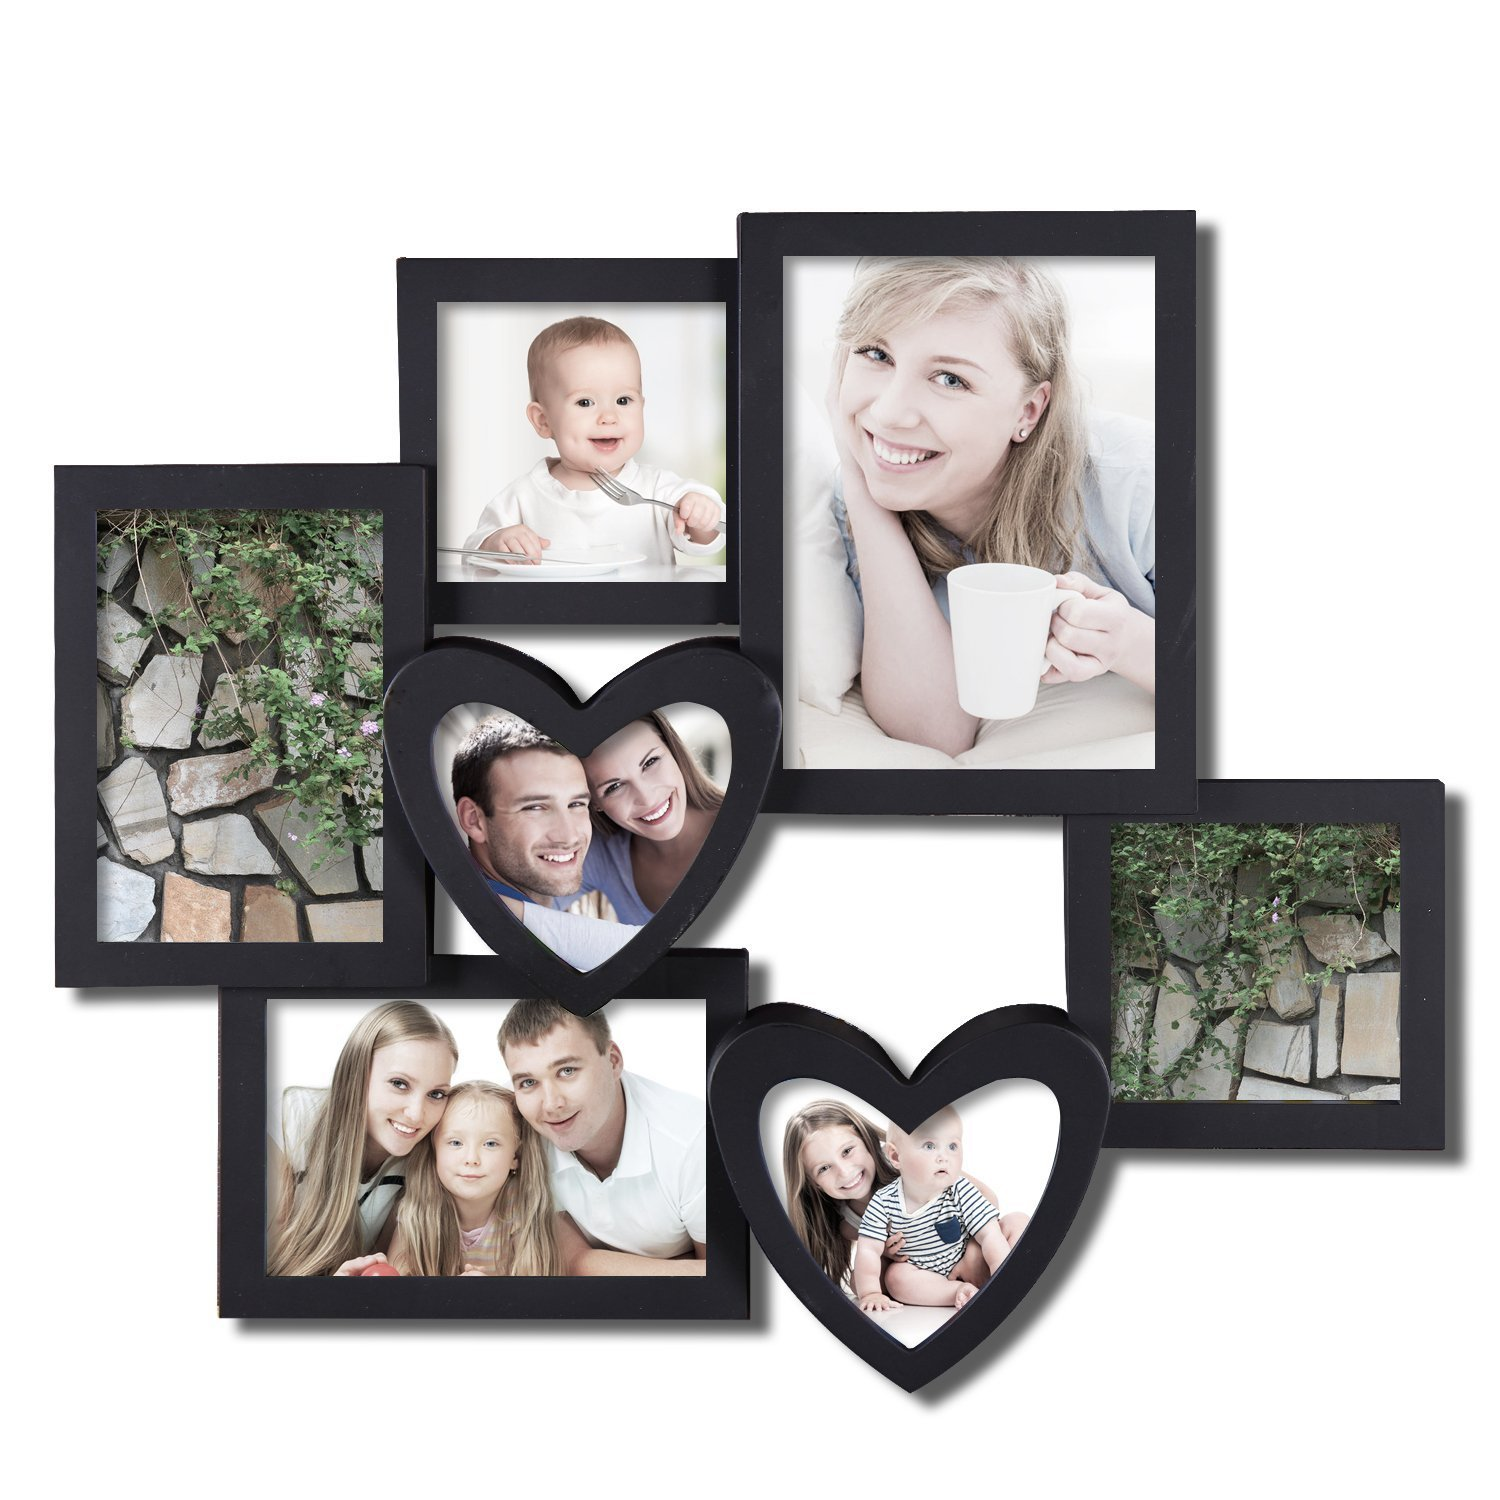 Amazon.com   Adeco 7 Openings Decroative Black Collage Picture Frame   Made  To Display Two 4x4 Heart Shape, Two 4x6, One 5x7 Photos   Collage Picture  Frames ...